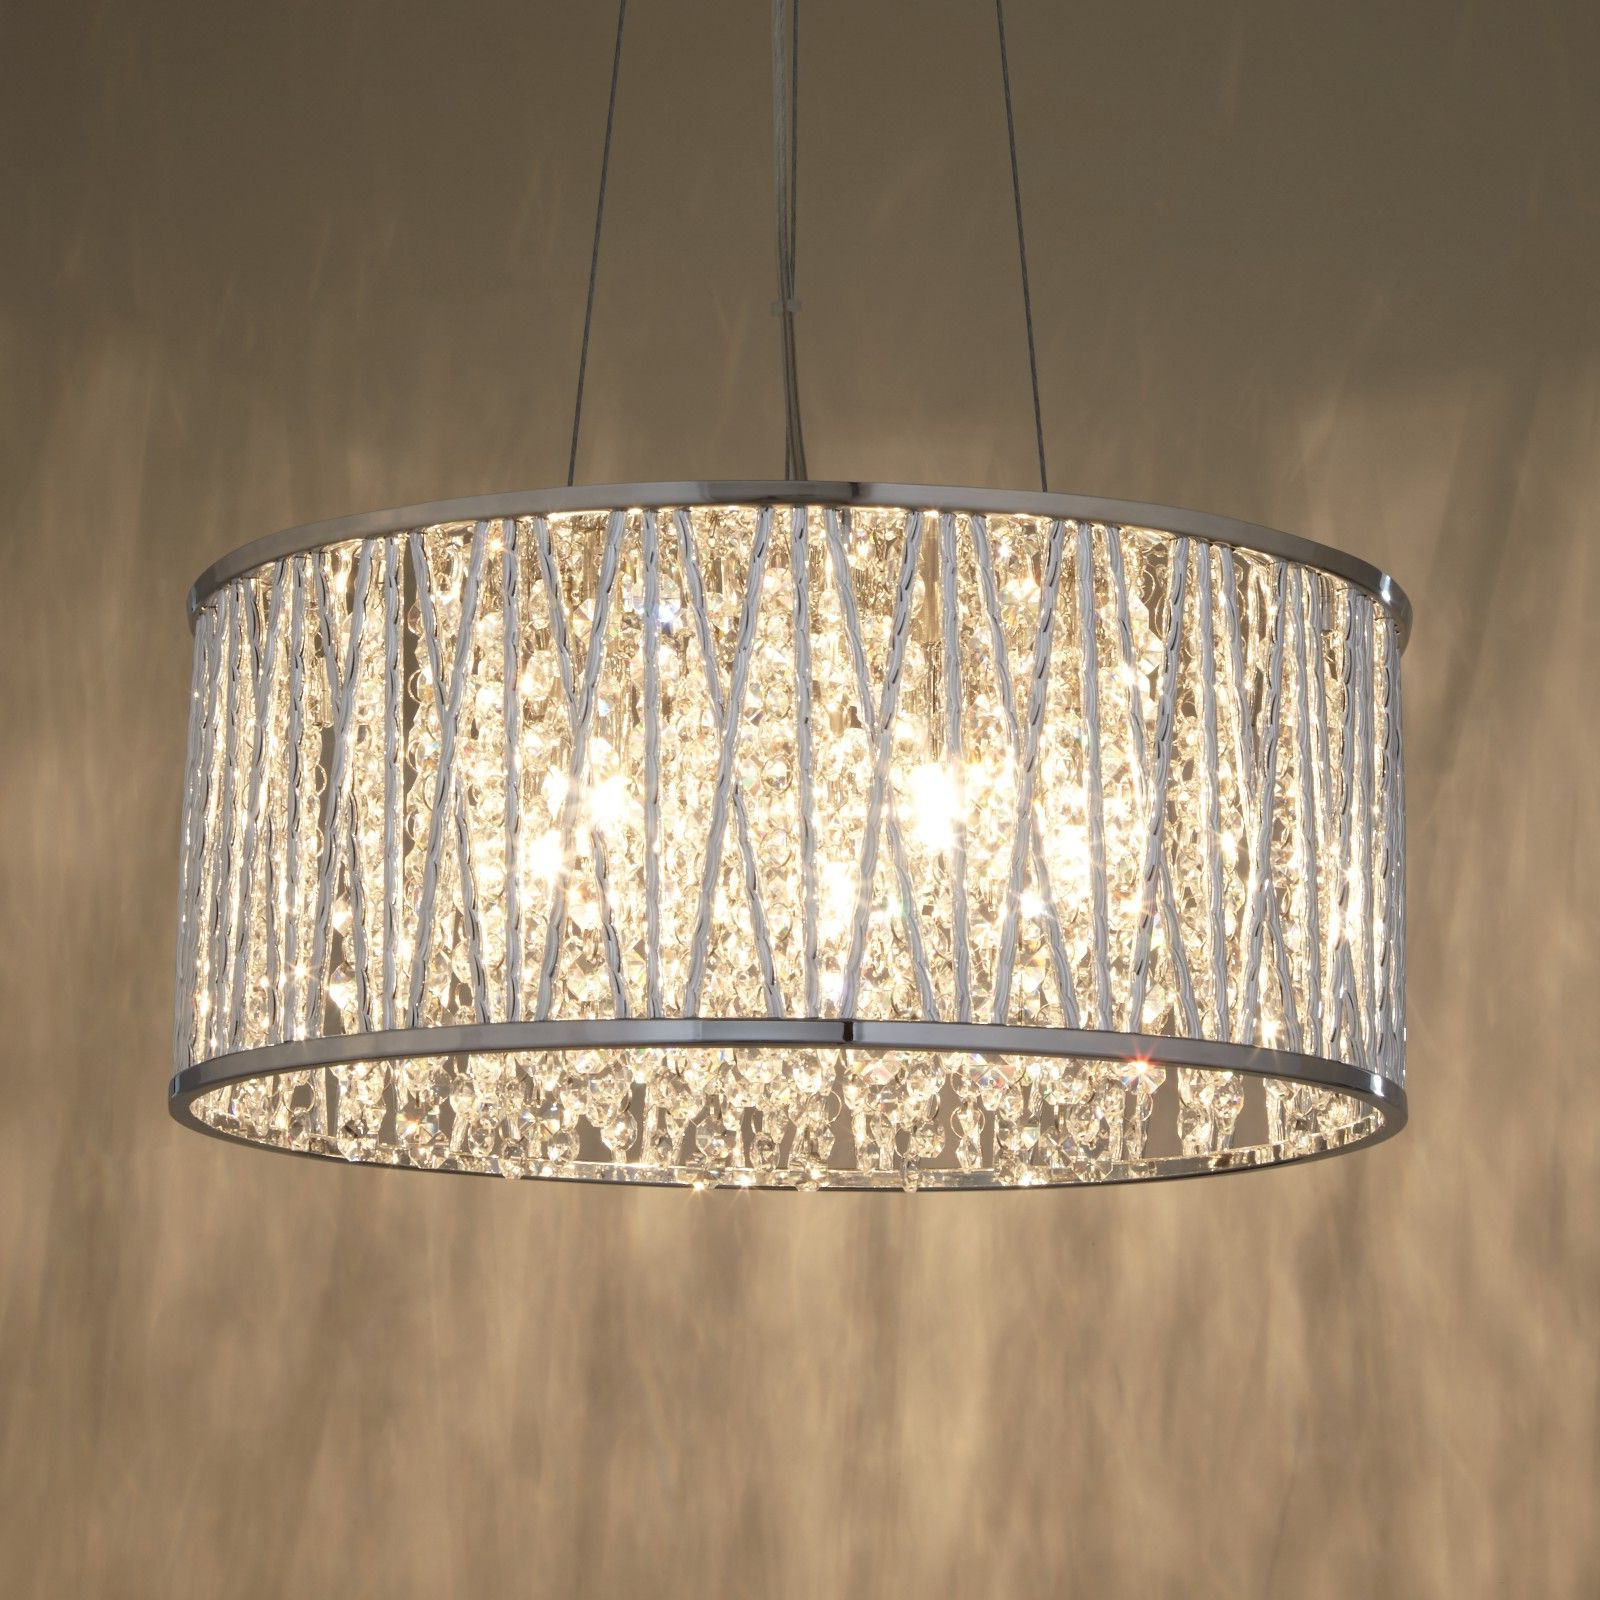 Current Von 4 Light Crystal Chandeliers Intended For John Lewis & Partners Emilia Large Crystal Ceiling Light (View 14 of 25)